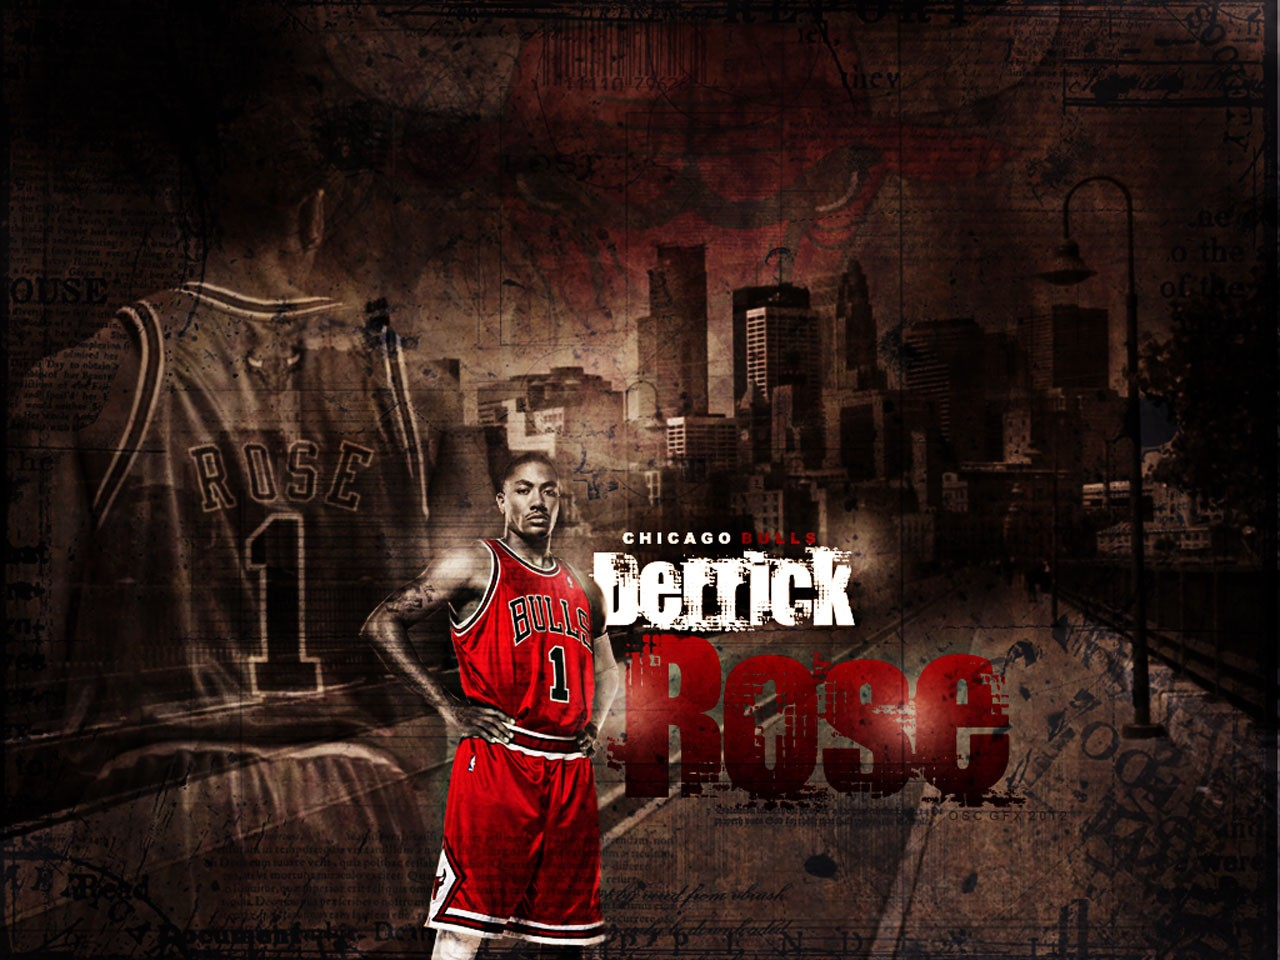 Chicago Bull Player Quotes Wallpaper Wallpaper WallpaperLepi 1280x960